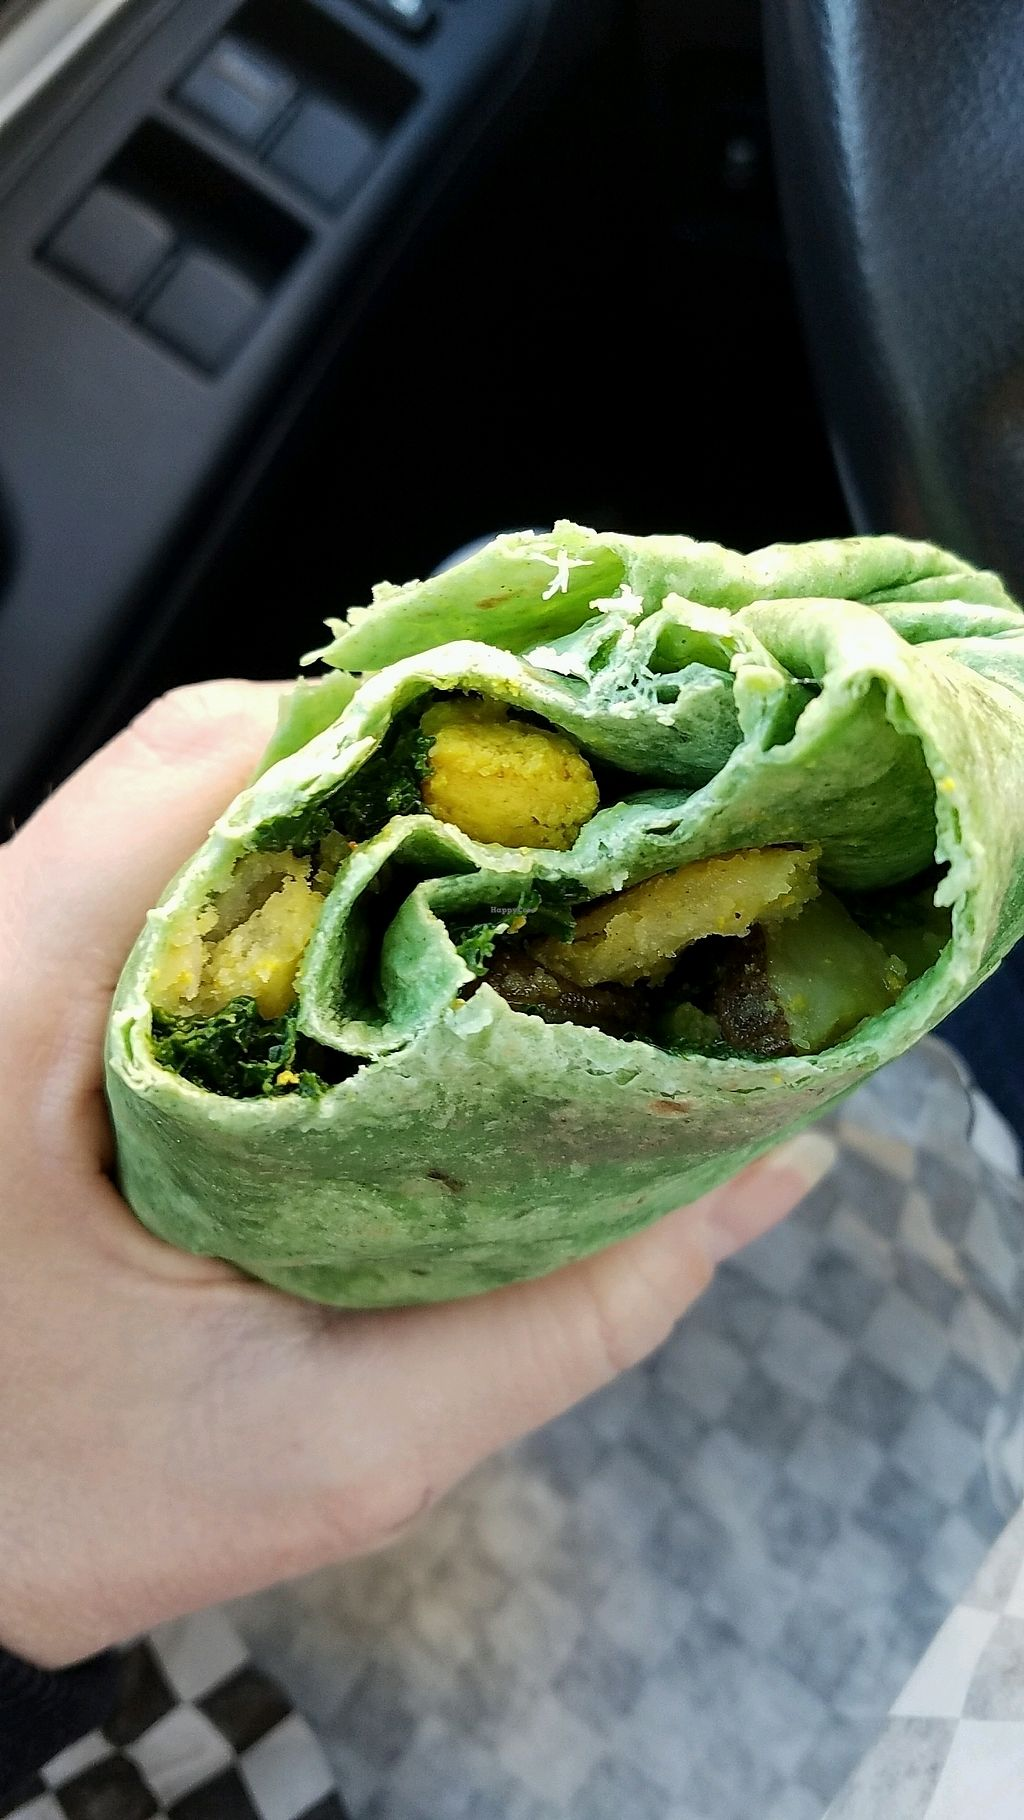 """Photo of Perks  by <a href=""""/members/profile/lv2compute"""">lv2compute</a> <br/>Tofu Kale breakfast wrap <br/> January 14, 2018  - <a href='/contact/abuse/image/104643/346621'>Report</a>"""